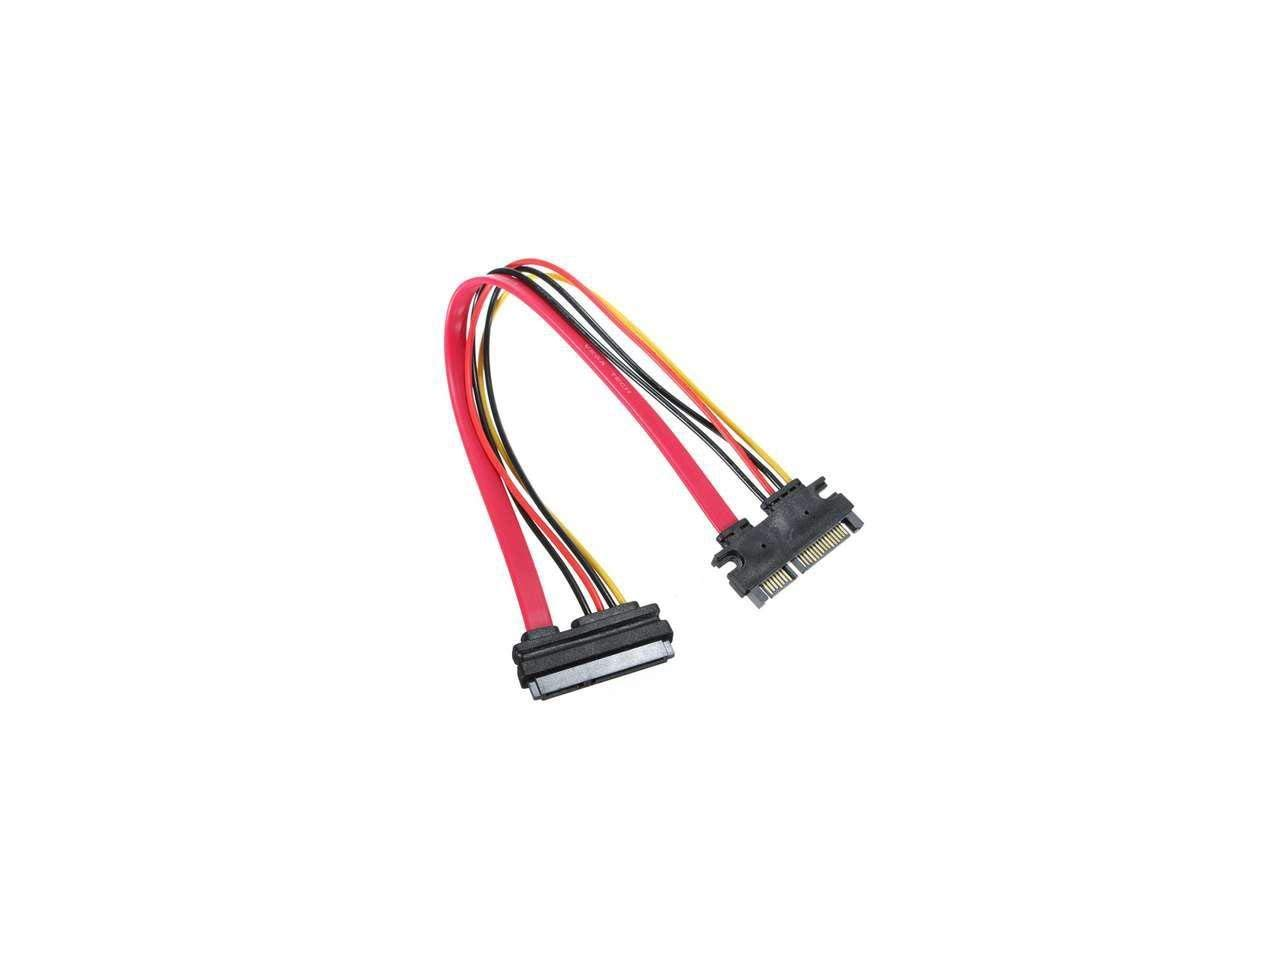 Buy Tekit RJ45 Femael to Male F/M Extension cable with